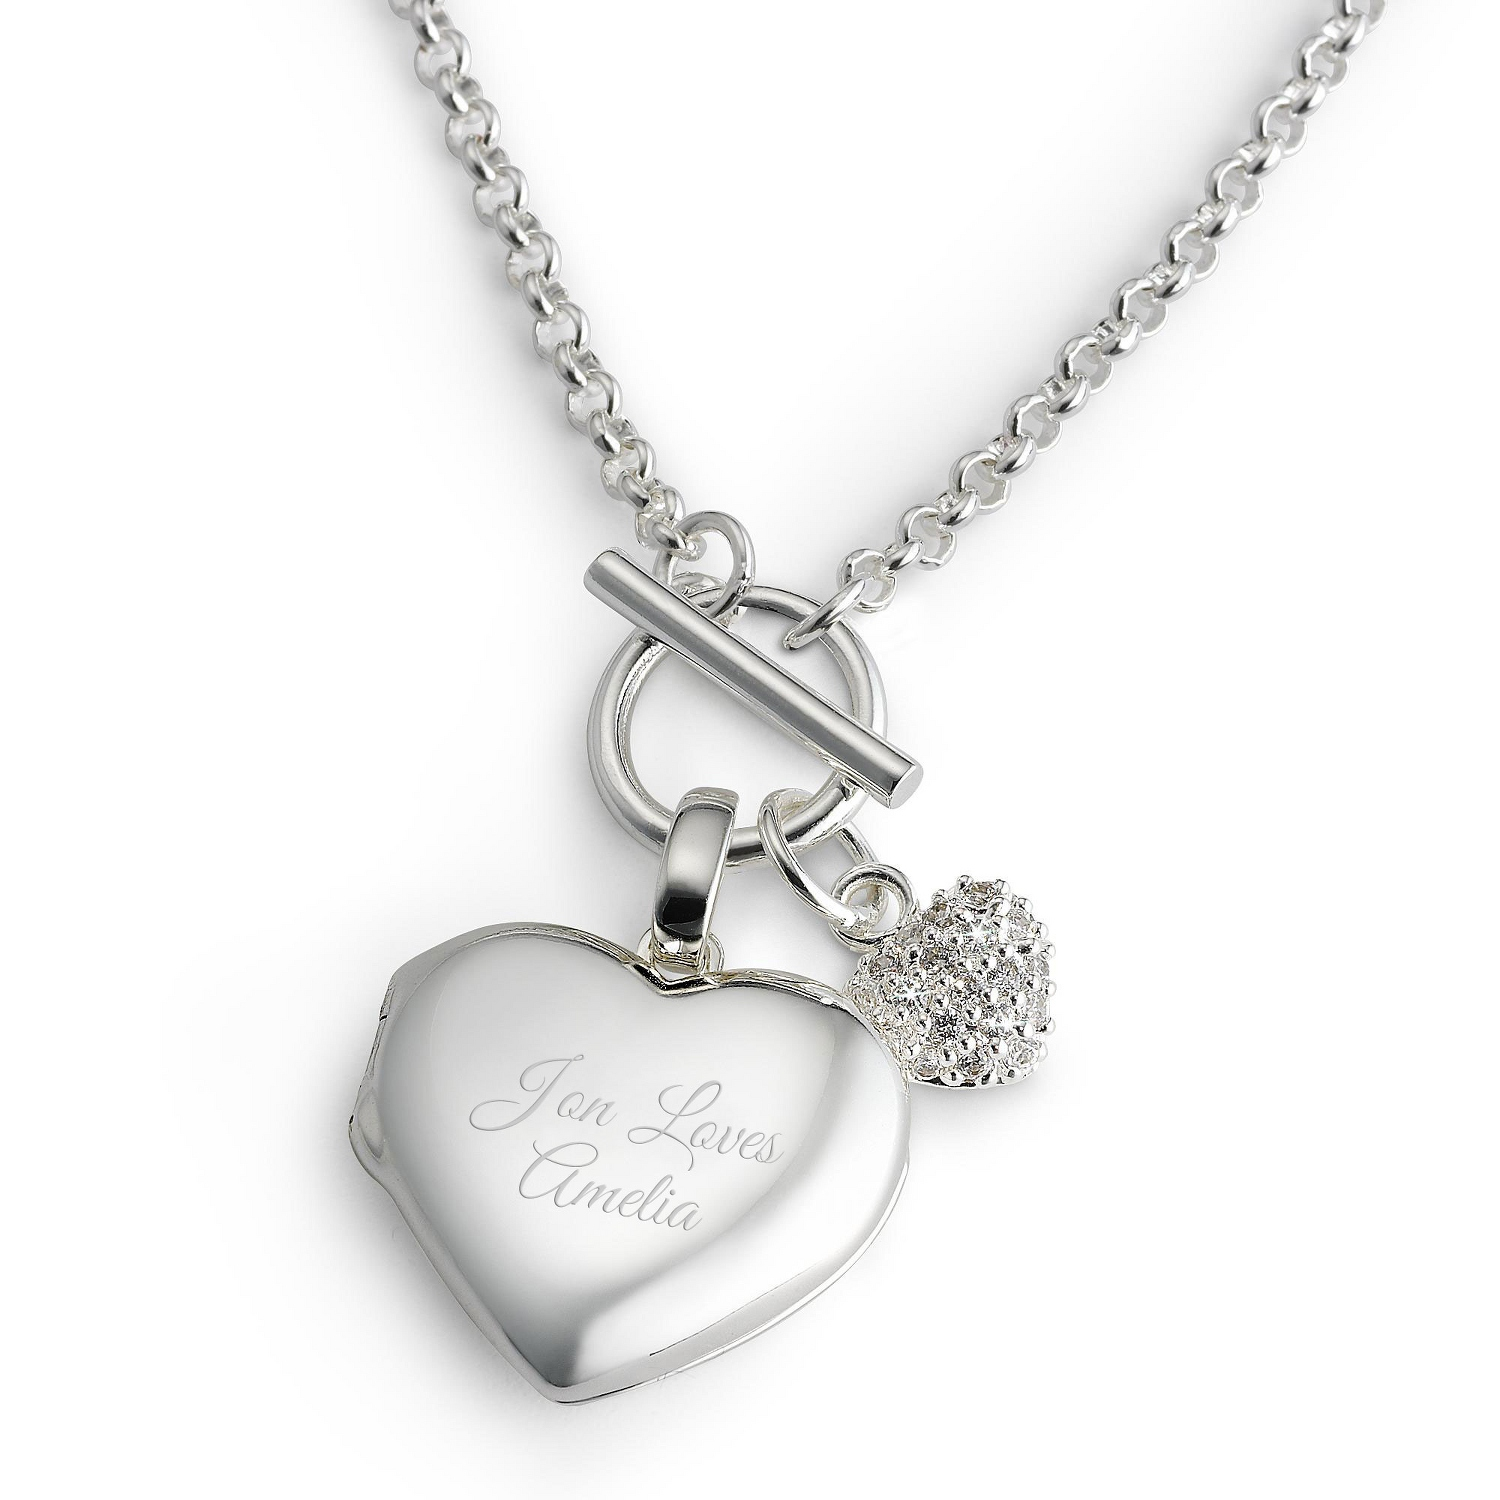 com flowers necklace heart dp silver amazon engraved lockets necklaces locket sterling jewelry